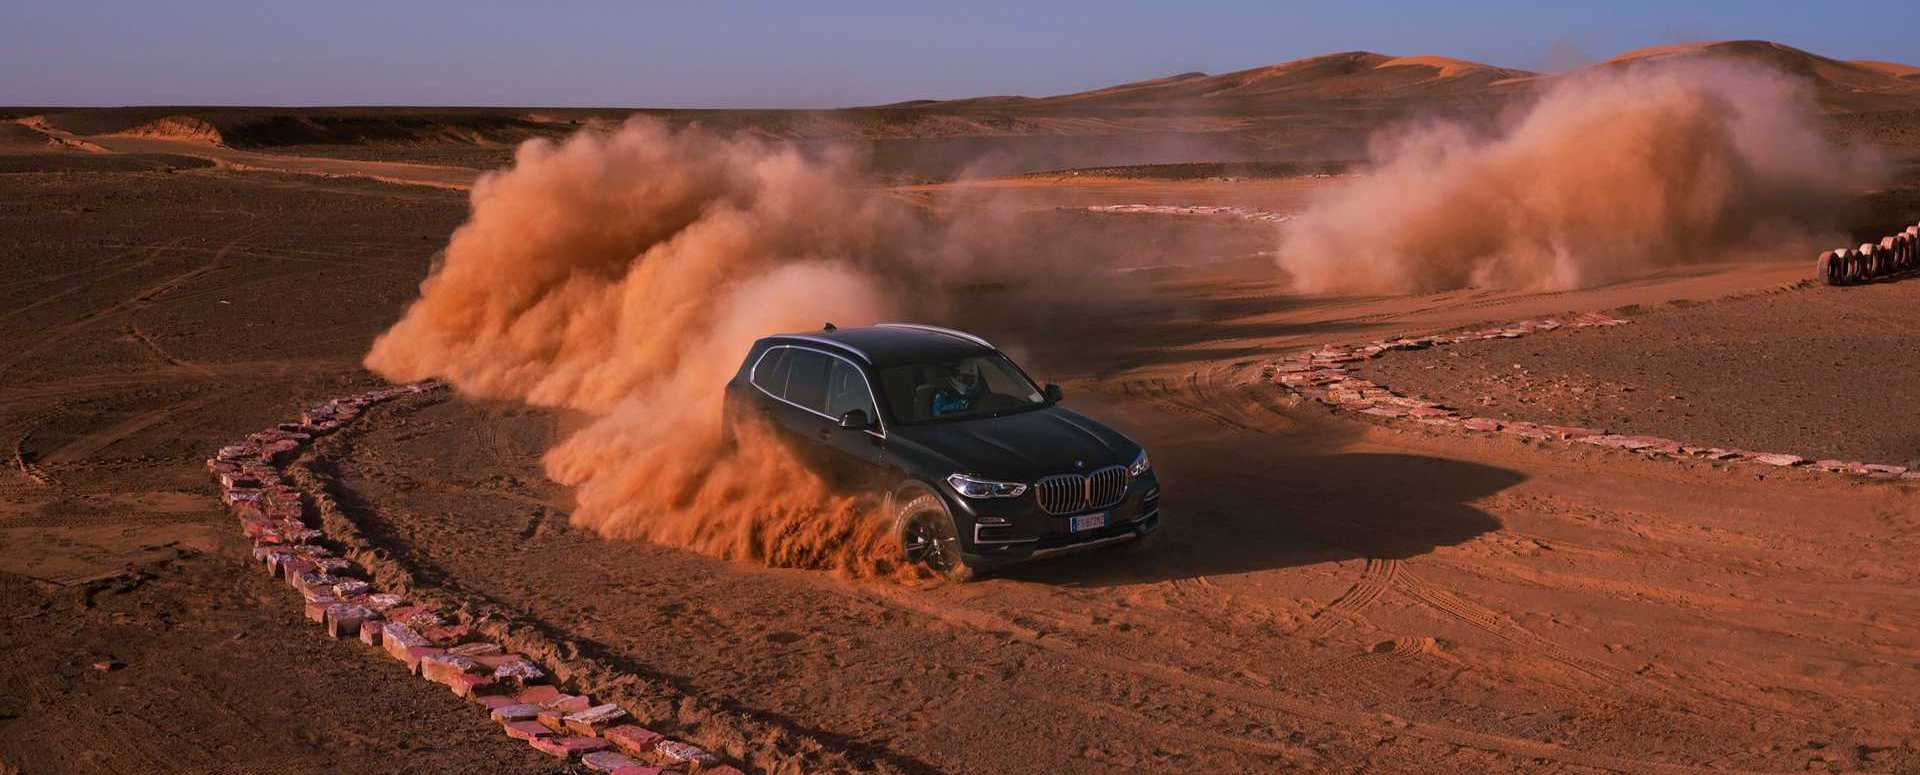 BMW Builds 'Monza Sahara' In Desert So X5 Can Play In Sandbox